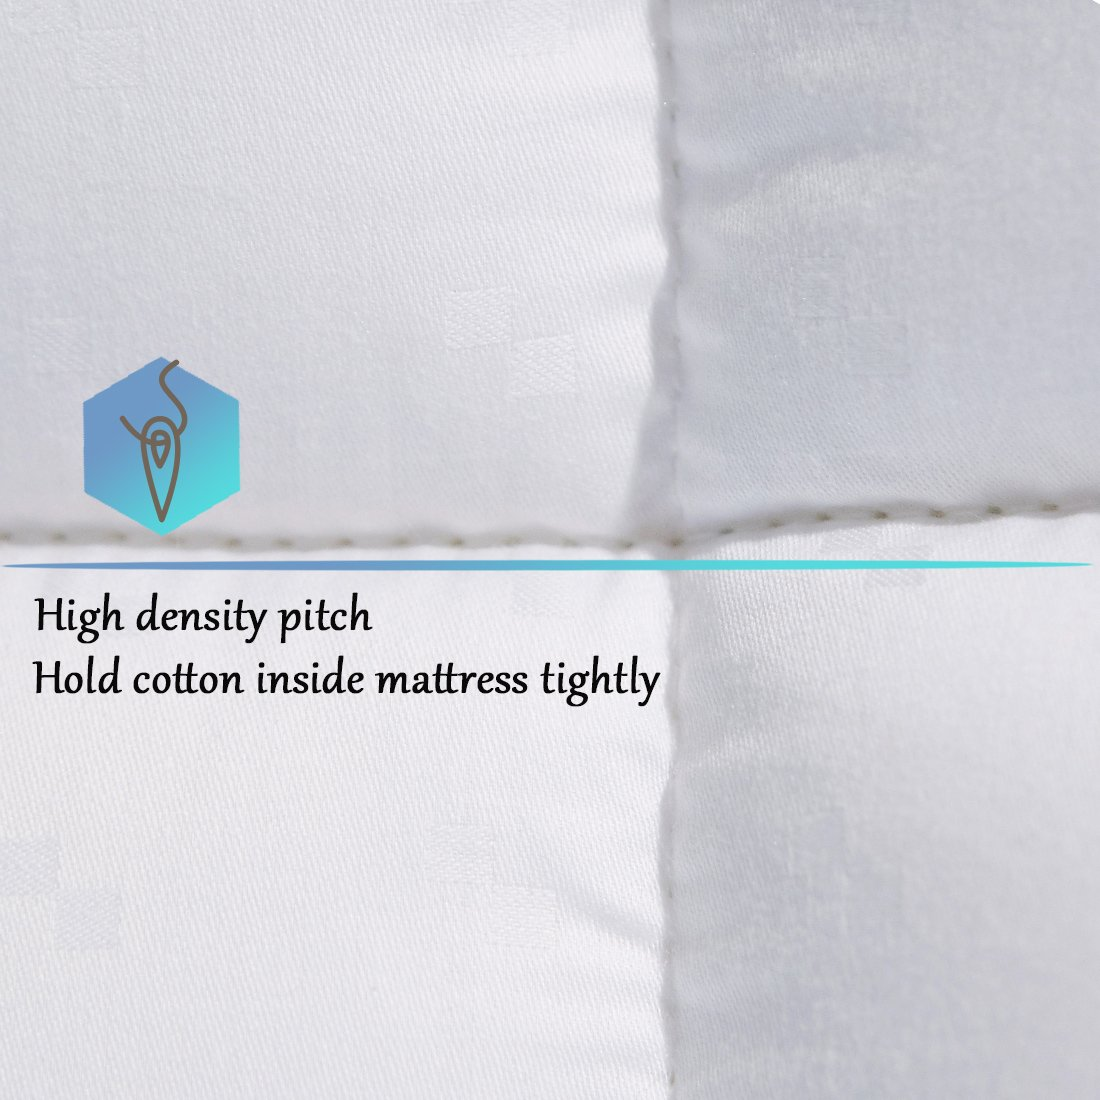 SONORO KATE Mattress Pad Cover Twin XL Size Down Alternative Mattress Topper Fitted Quilted (8-21-Inch Deep Pocket)- Hypoallergenic -(Twin XL, White) by SONORO KATE (Image #7)